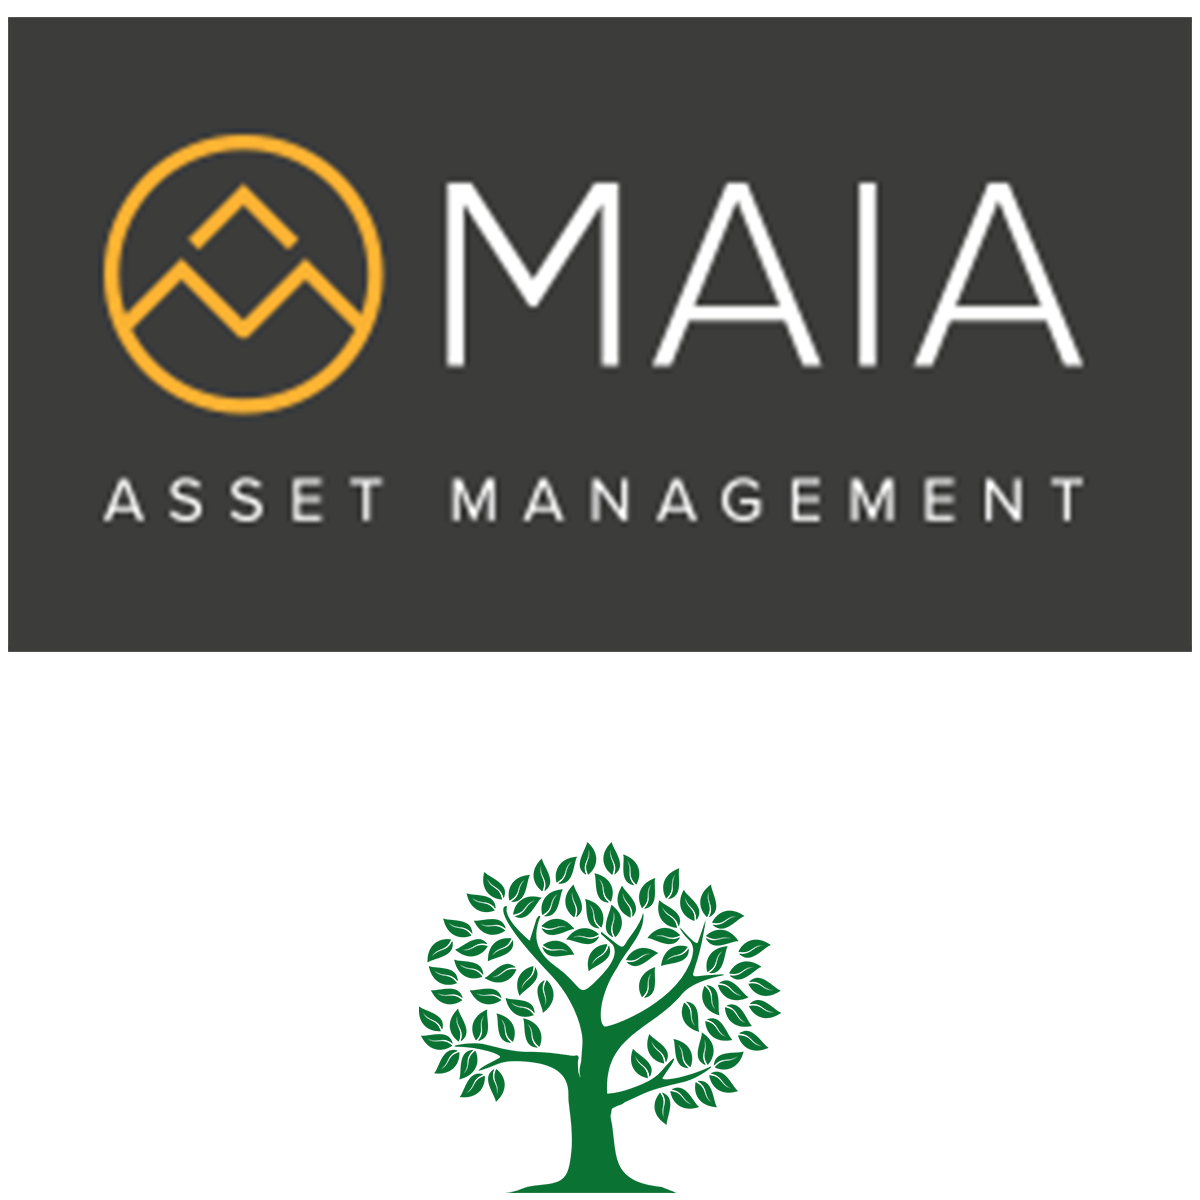 MAIA Asset Management